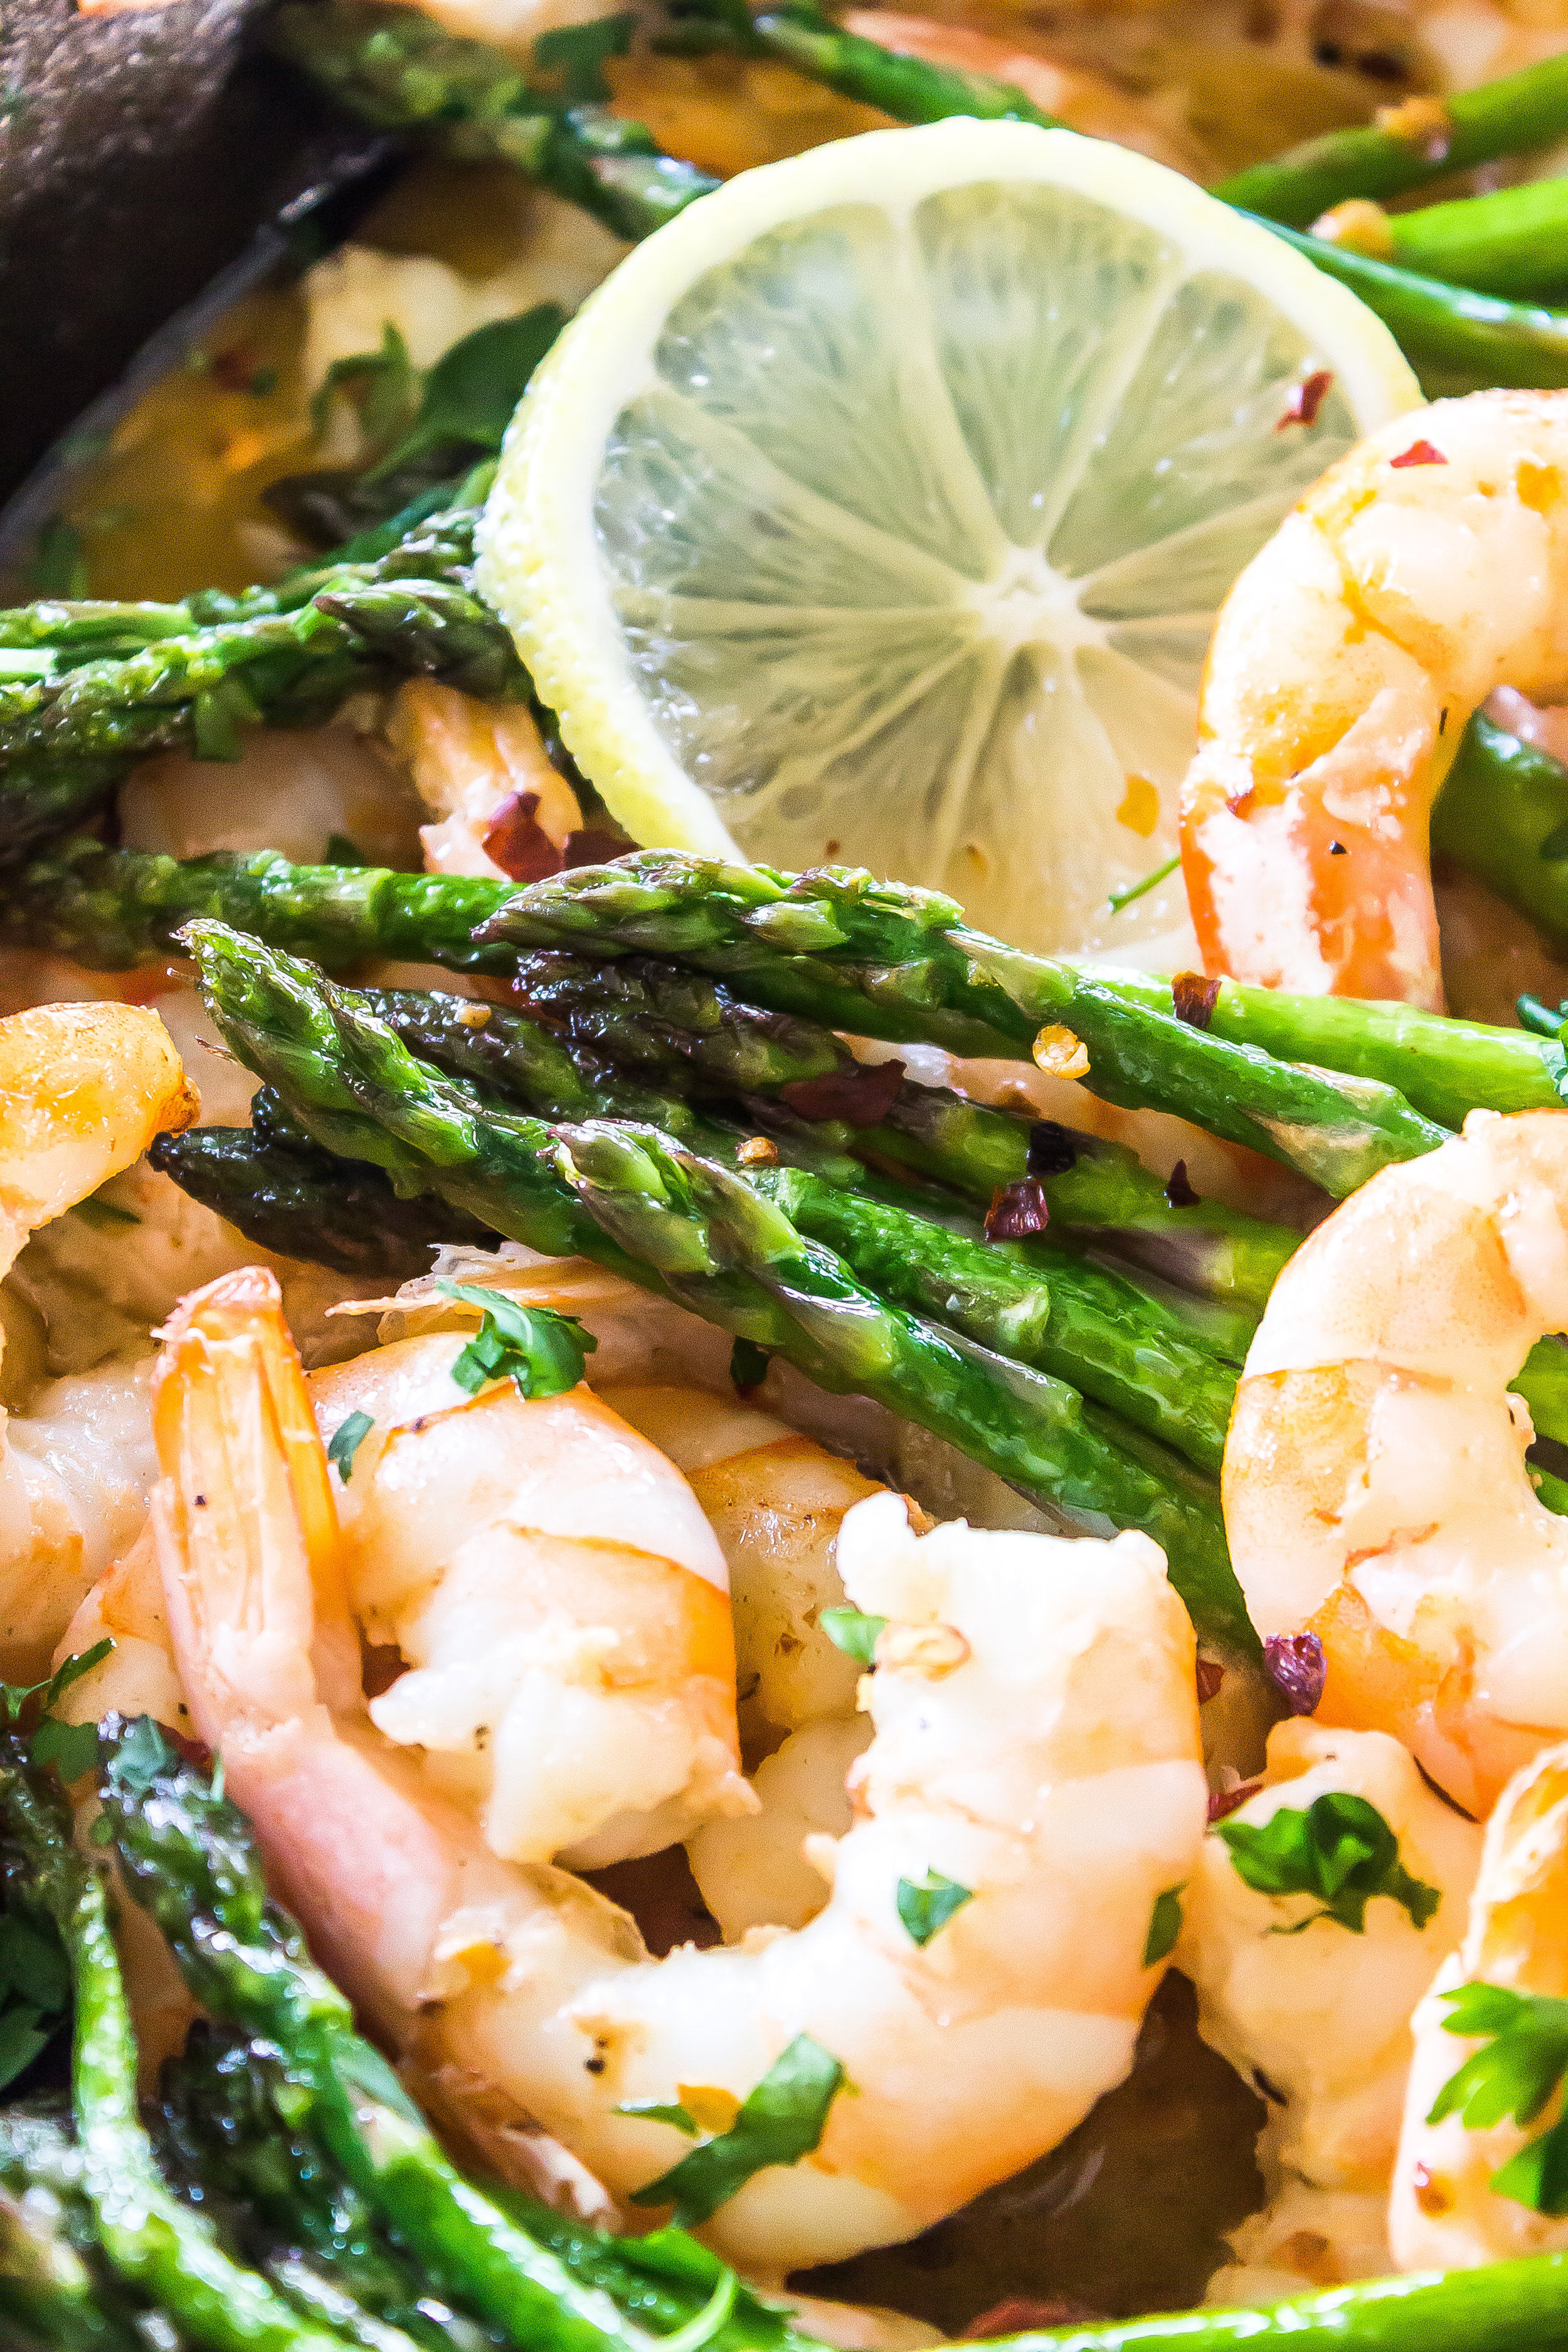 This Keto Garlic Butter Shrimp and Asparagus Skillet is ready in less than 20 minutes and has less than 5-ingredients! #keto #lowcarb #ketorecipe #lowcarbrecipe #lchf #5ingredient #20minutemeal #easyrecipe #recipe #glutenfree